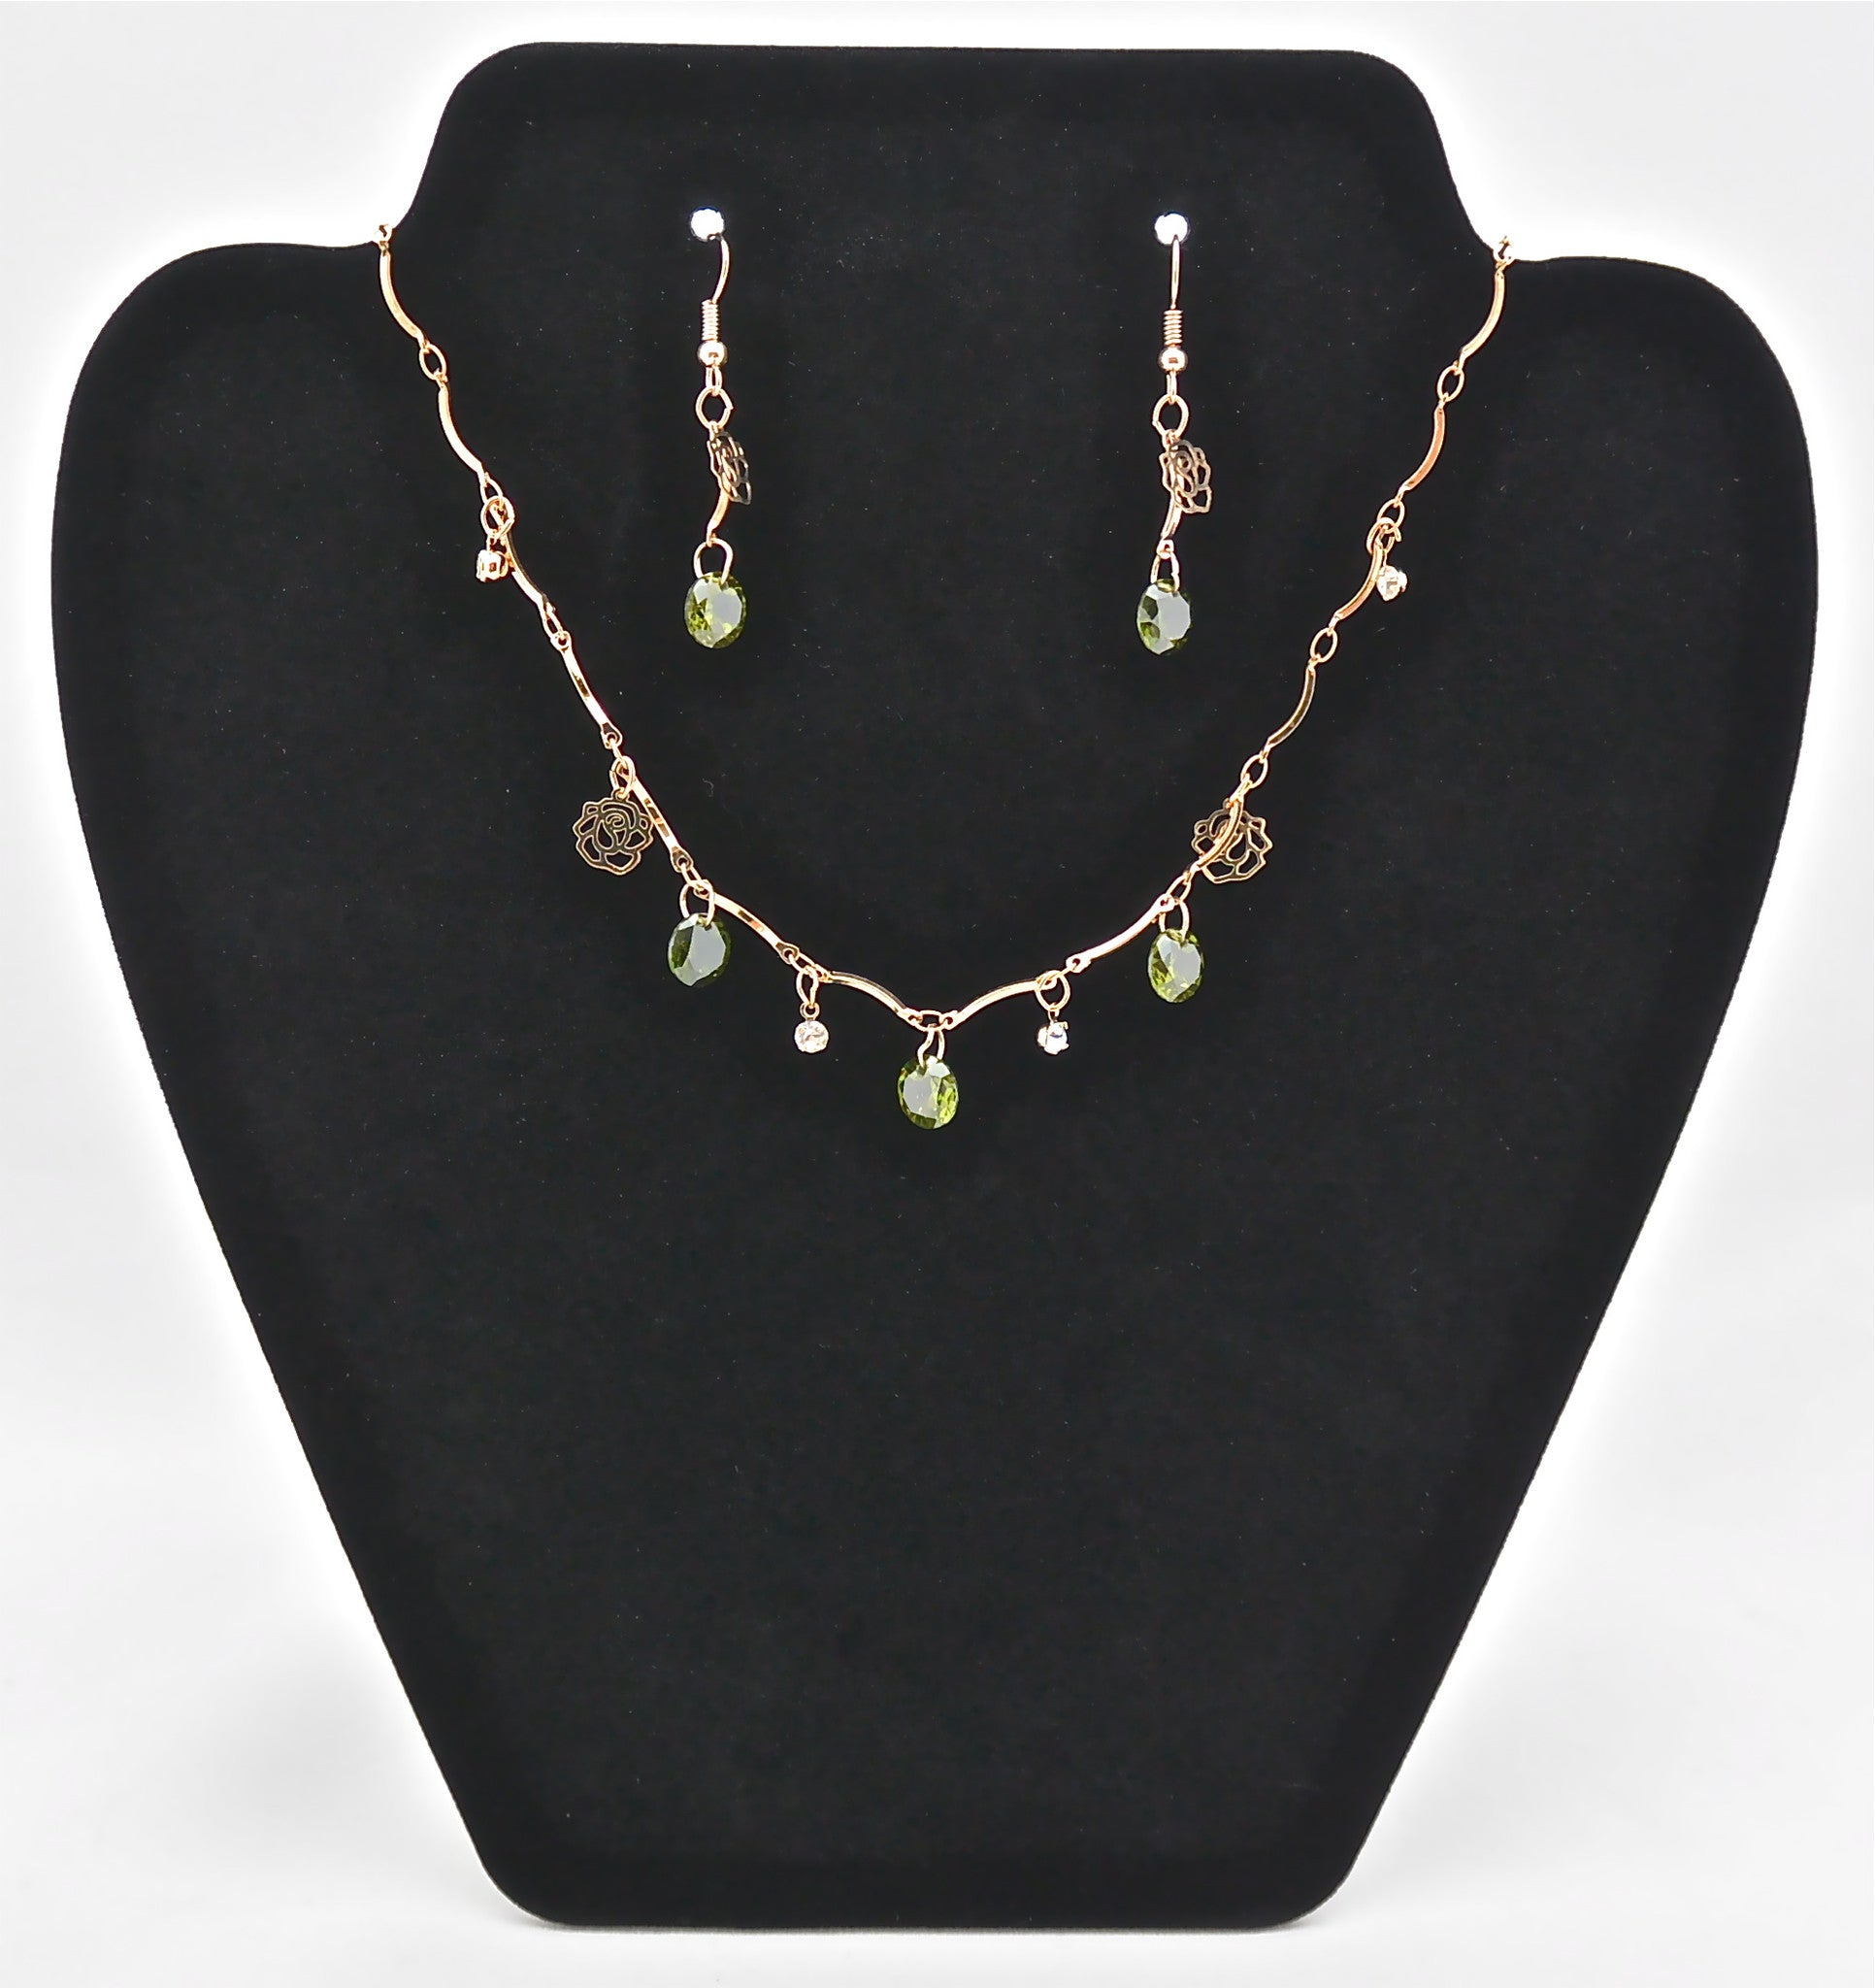 jewelry aaa green necklace dsc set clear stone gold cz plated collections products crystal earrings